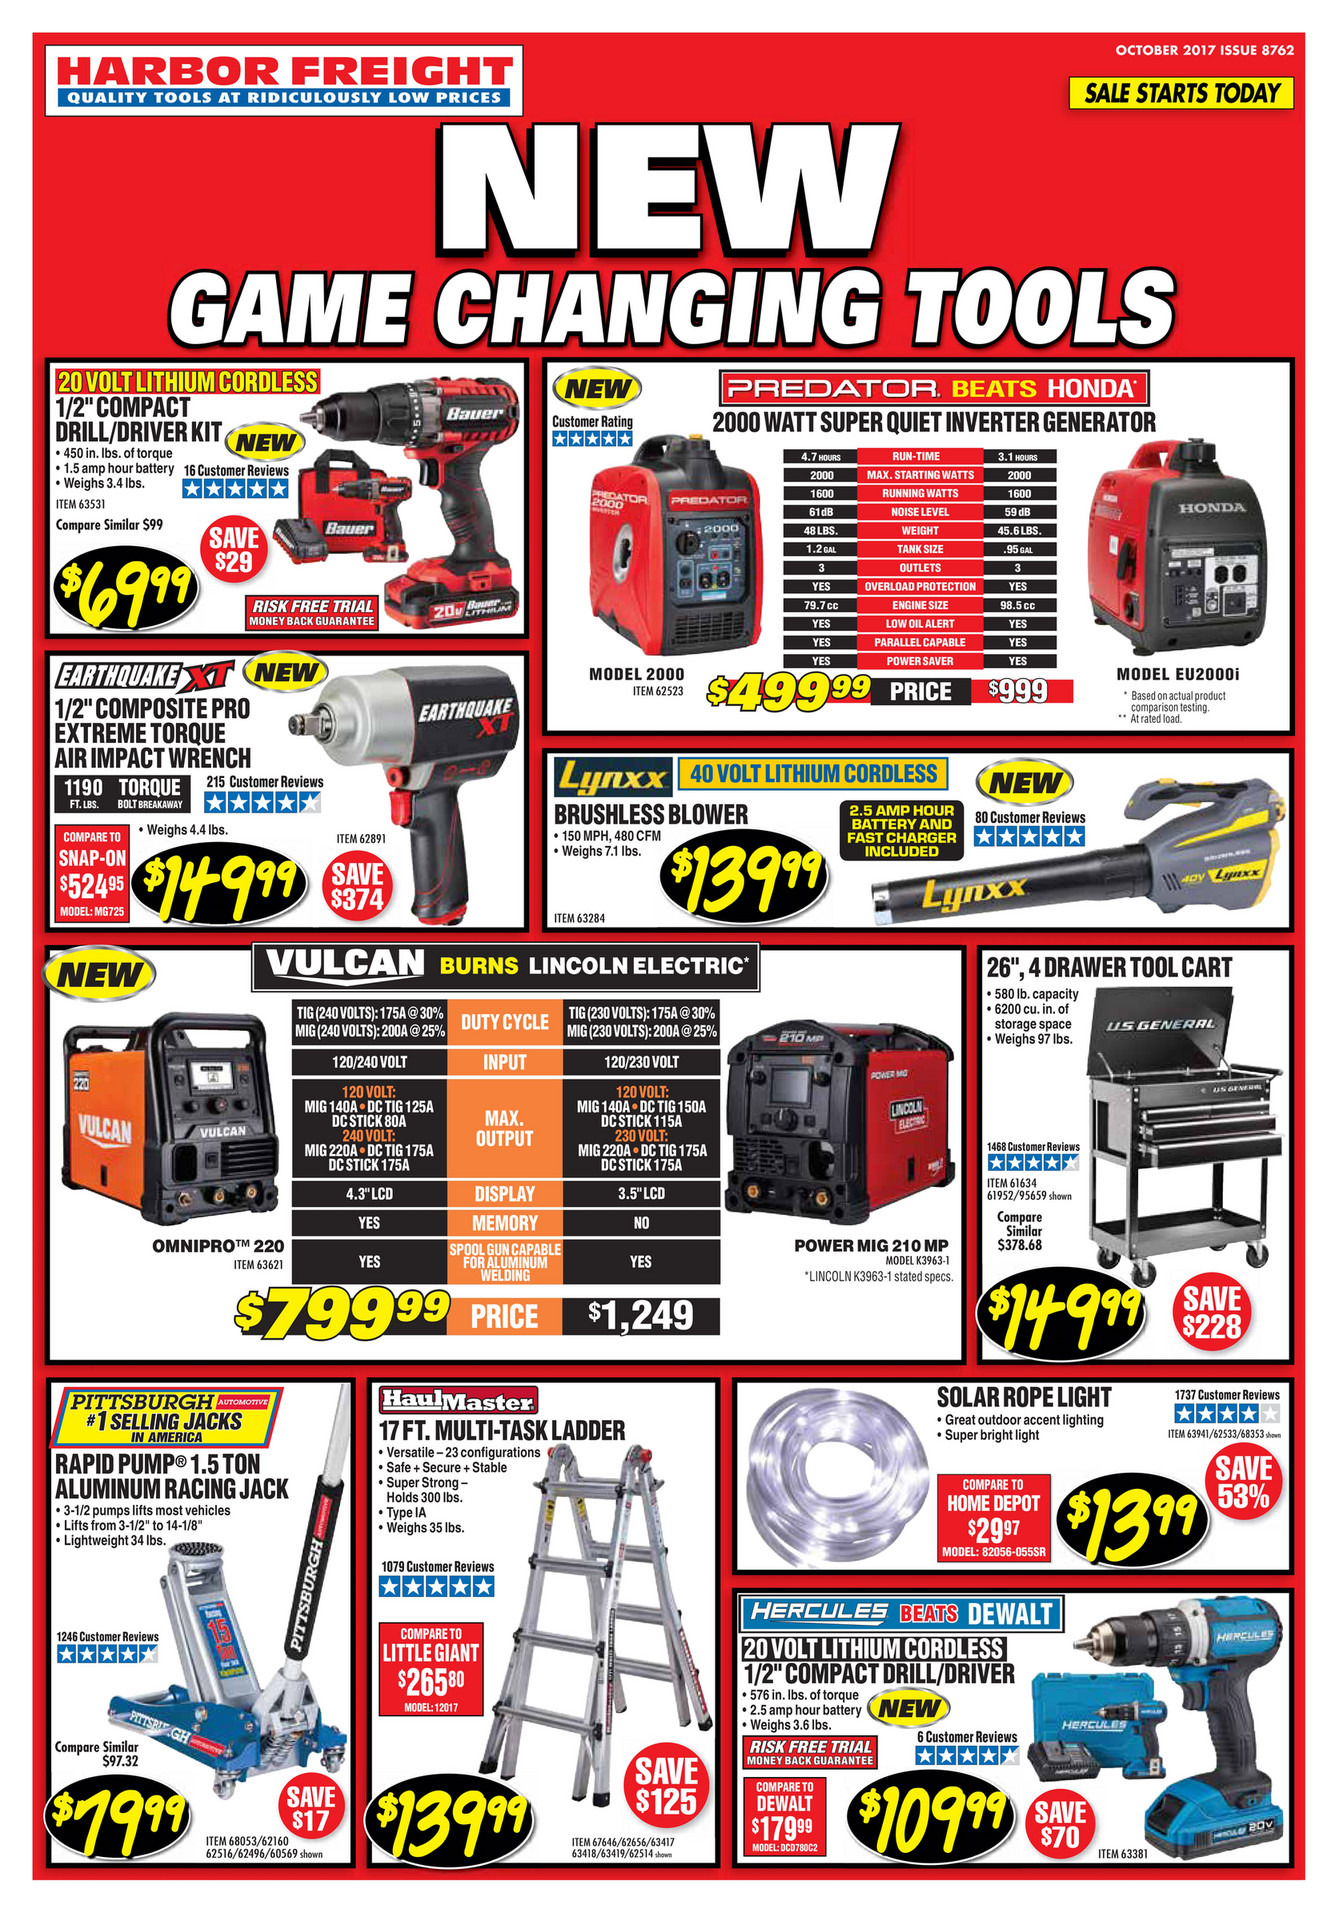 Since , Harbor Freight Tools' mission has been to provide workers with high quality tools for reasonable prices. Now, one of the largest tool and equipment retailers in the U.S., Harbor Freight Tools sells more than 5, items that'll help you complete nearly any job under the sun.